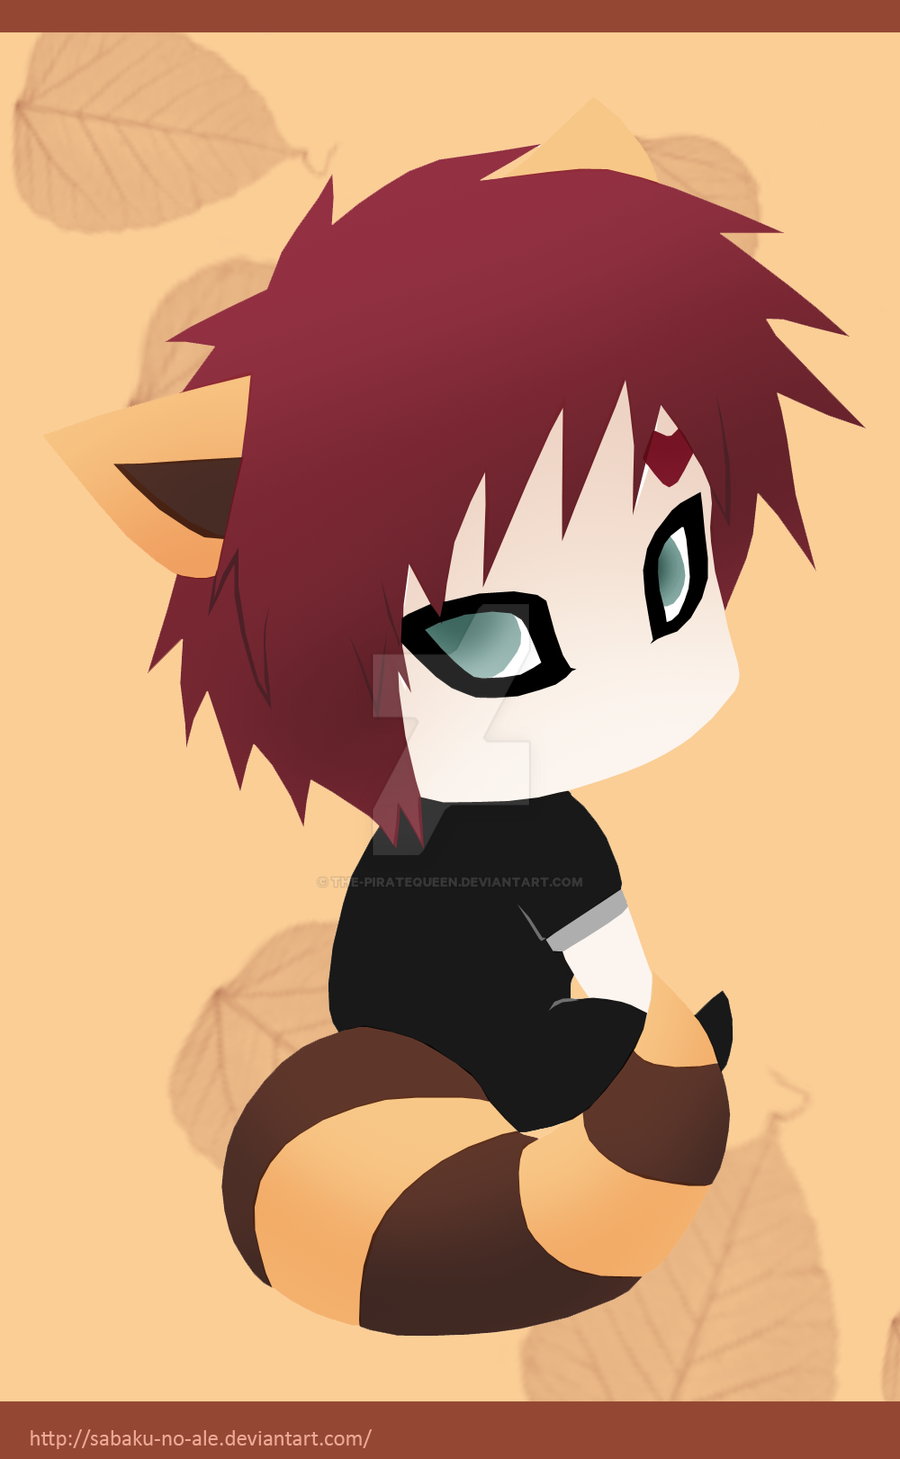 Chibis+Naruto: Gaara by The-PirateQueen on DeviantArt Gaara And Naruto Chibi